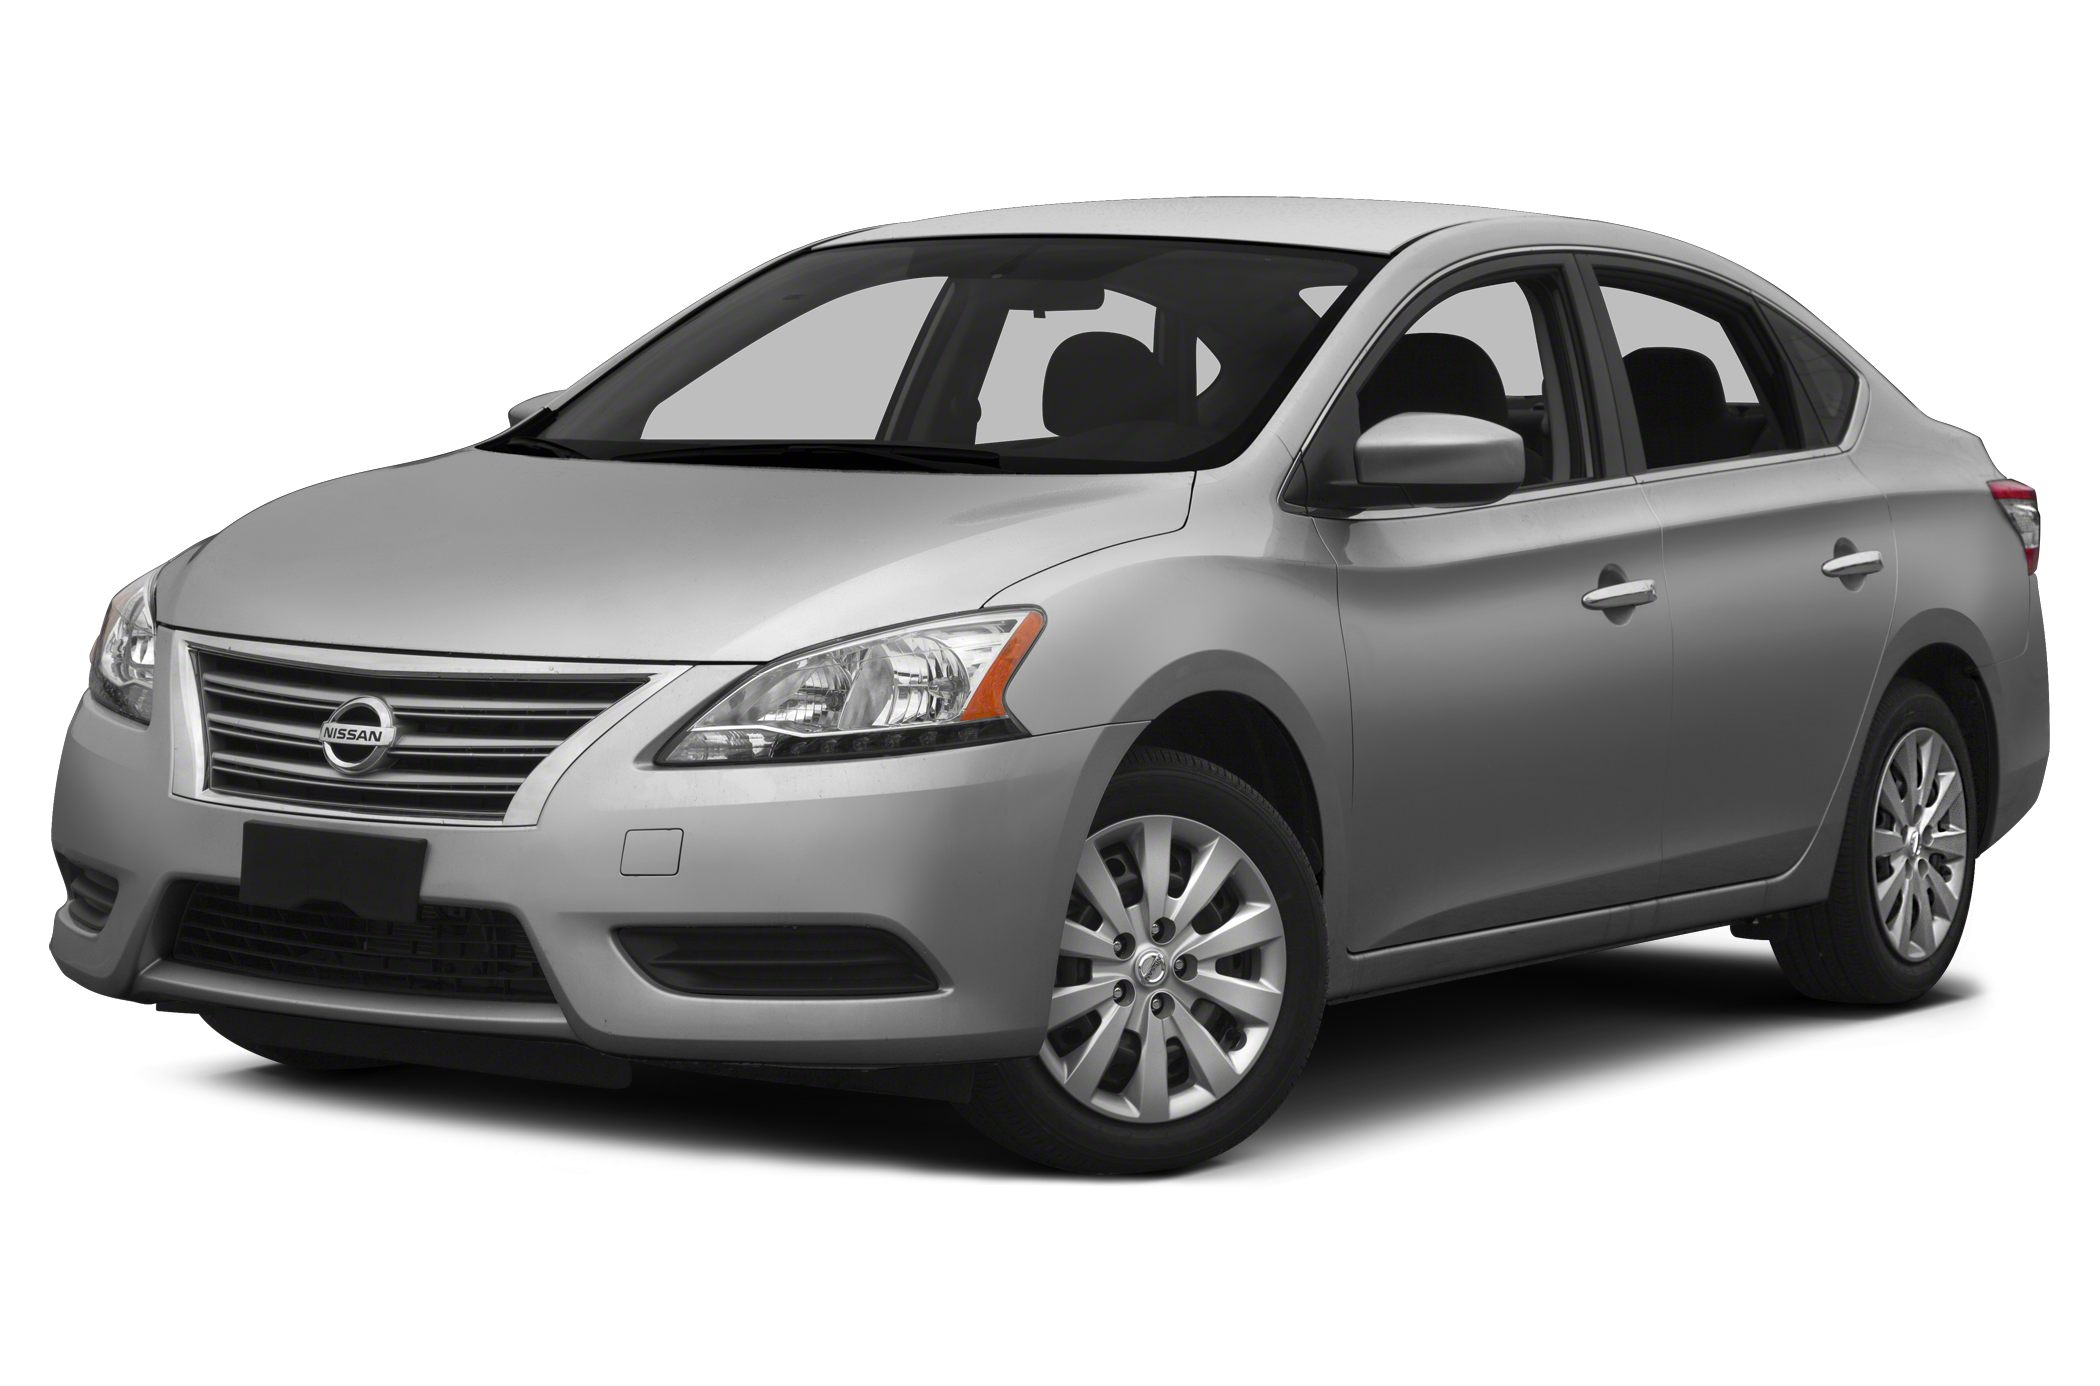 2014 Nissan Sentra SV Your Miles 6637Color Gray Stock 7105P VIN 3N1AB7AP0EY314749